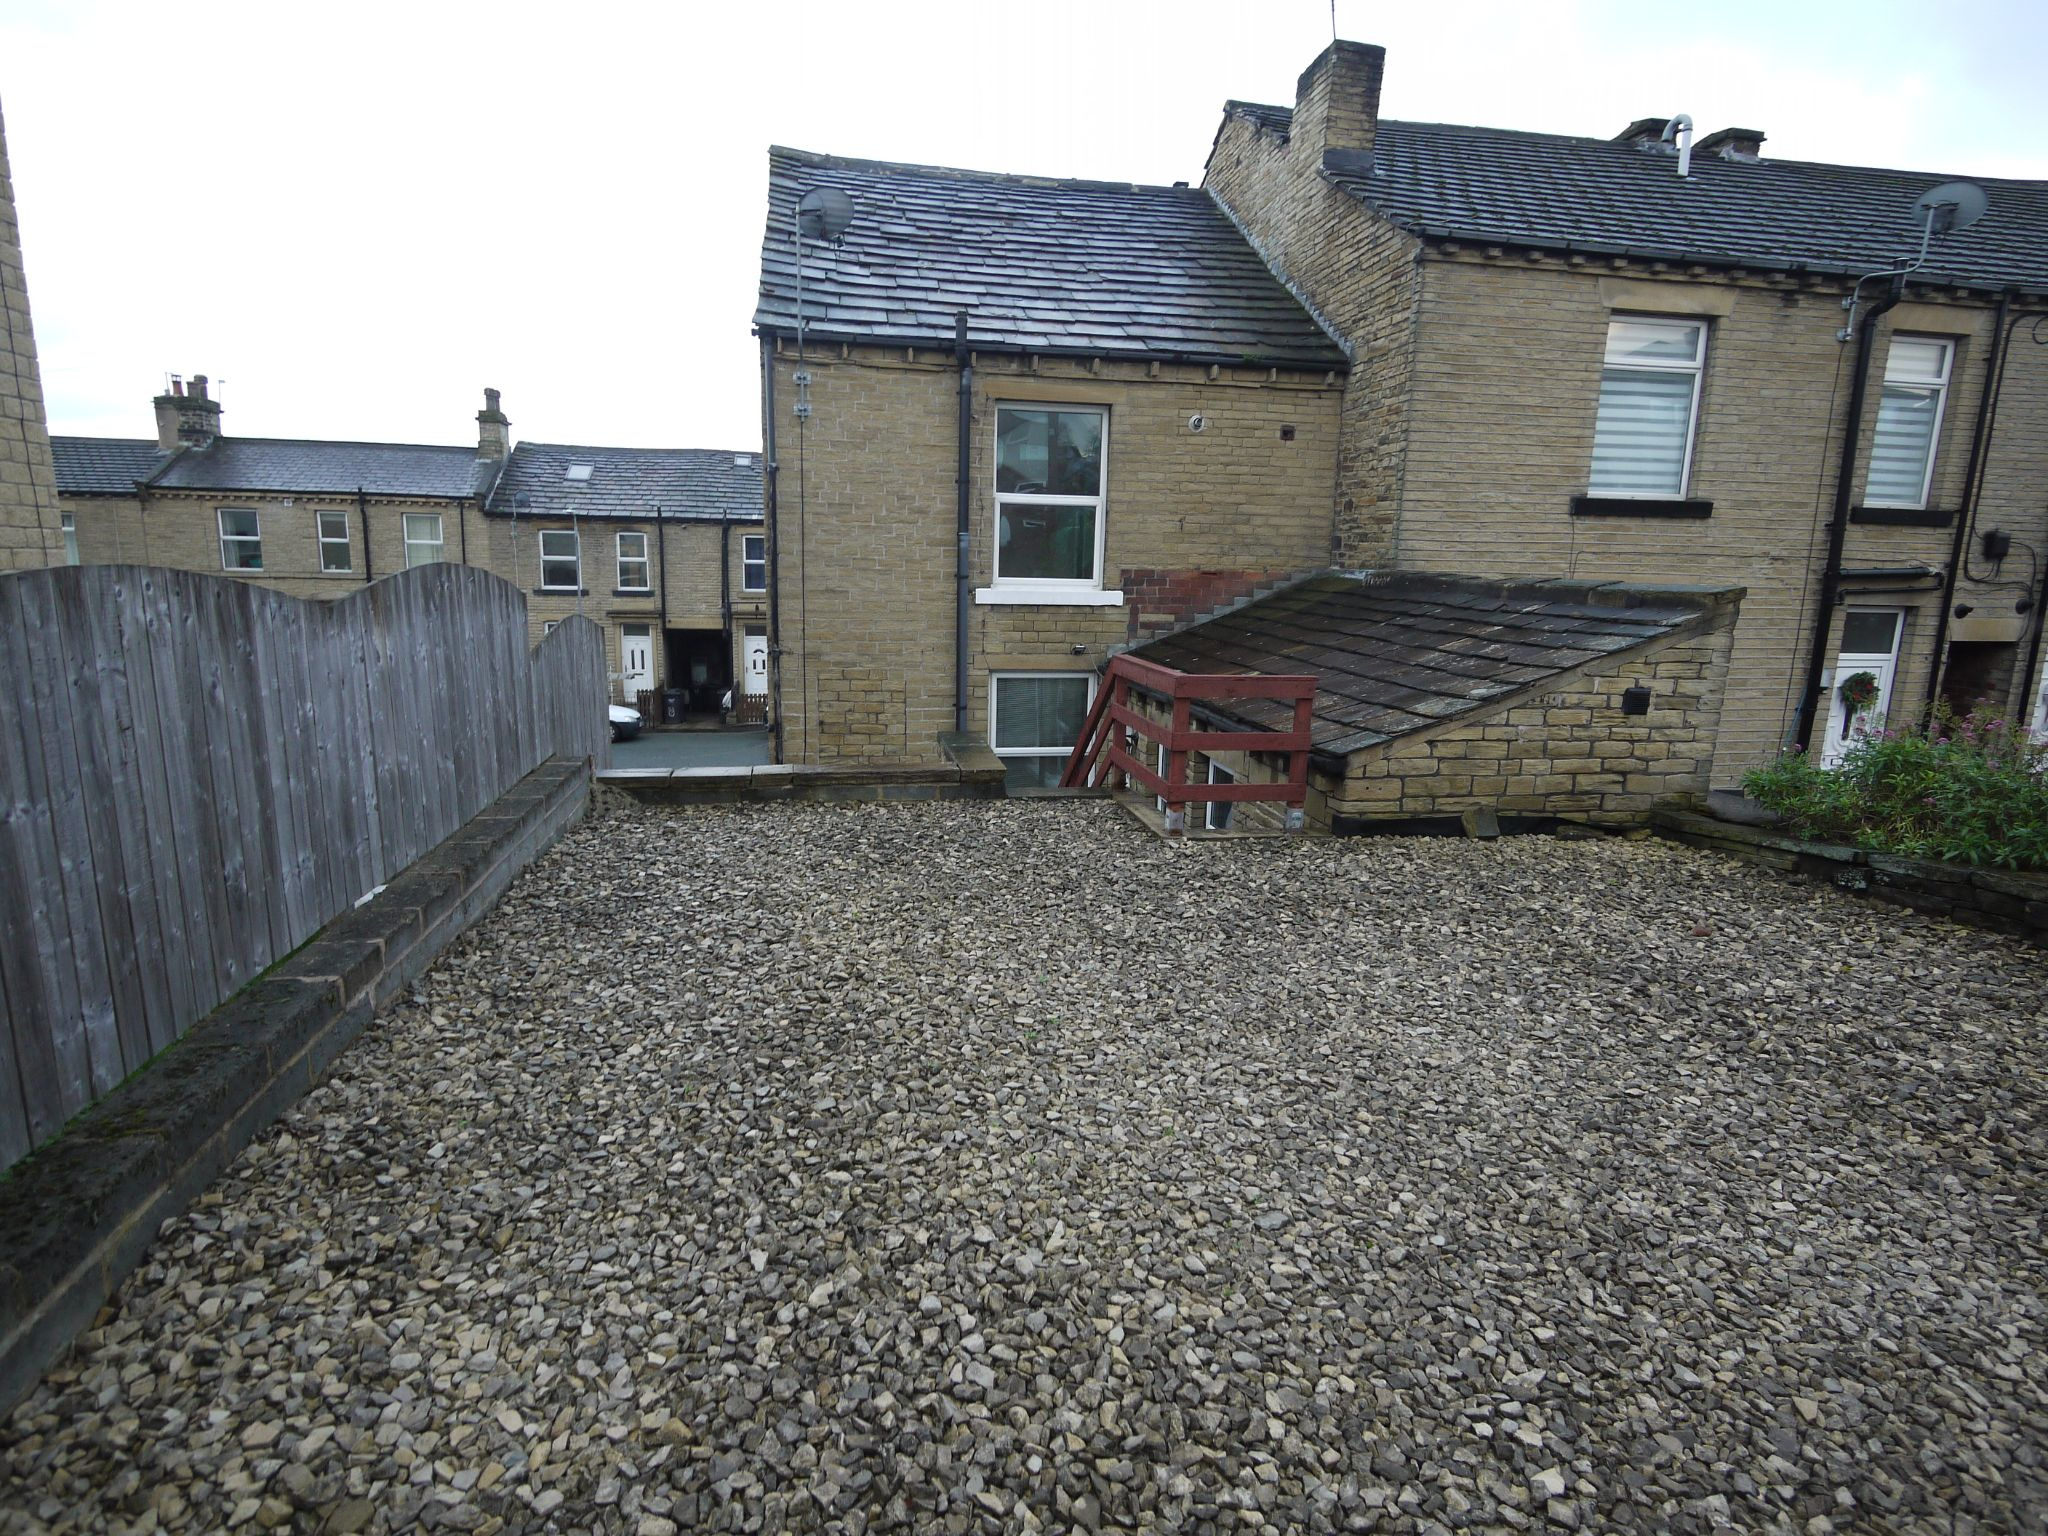 2 bedroom mid terraced house SSTC in Brighouse - Photograph 11.